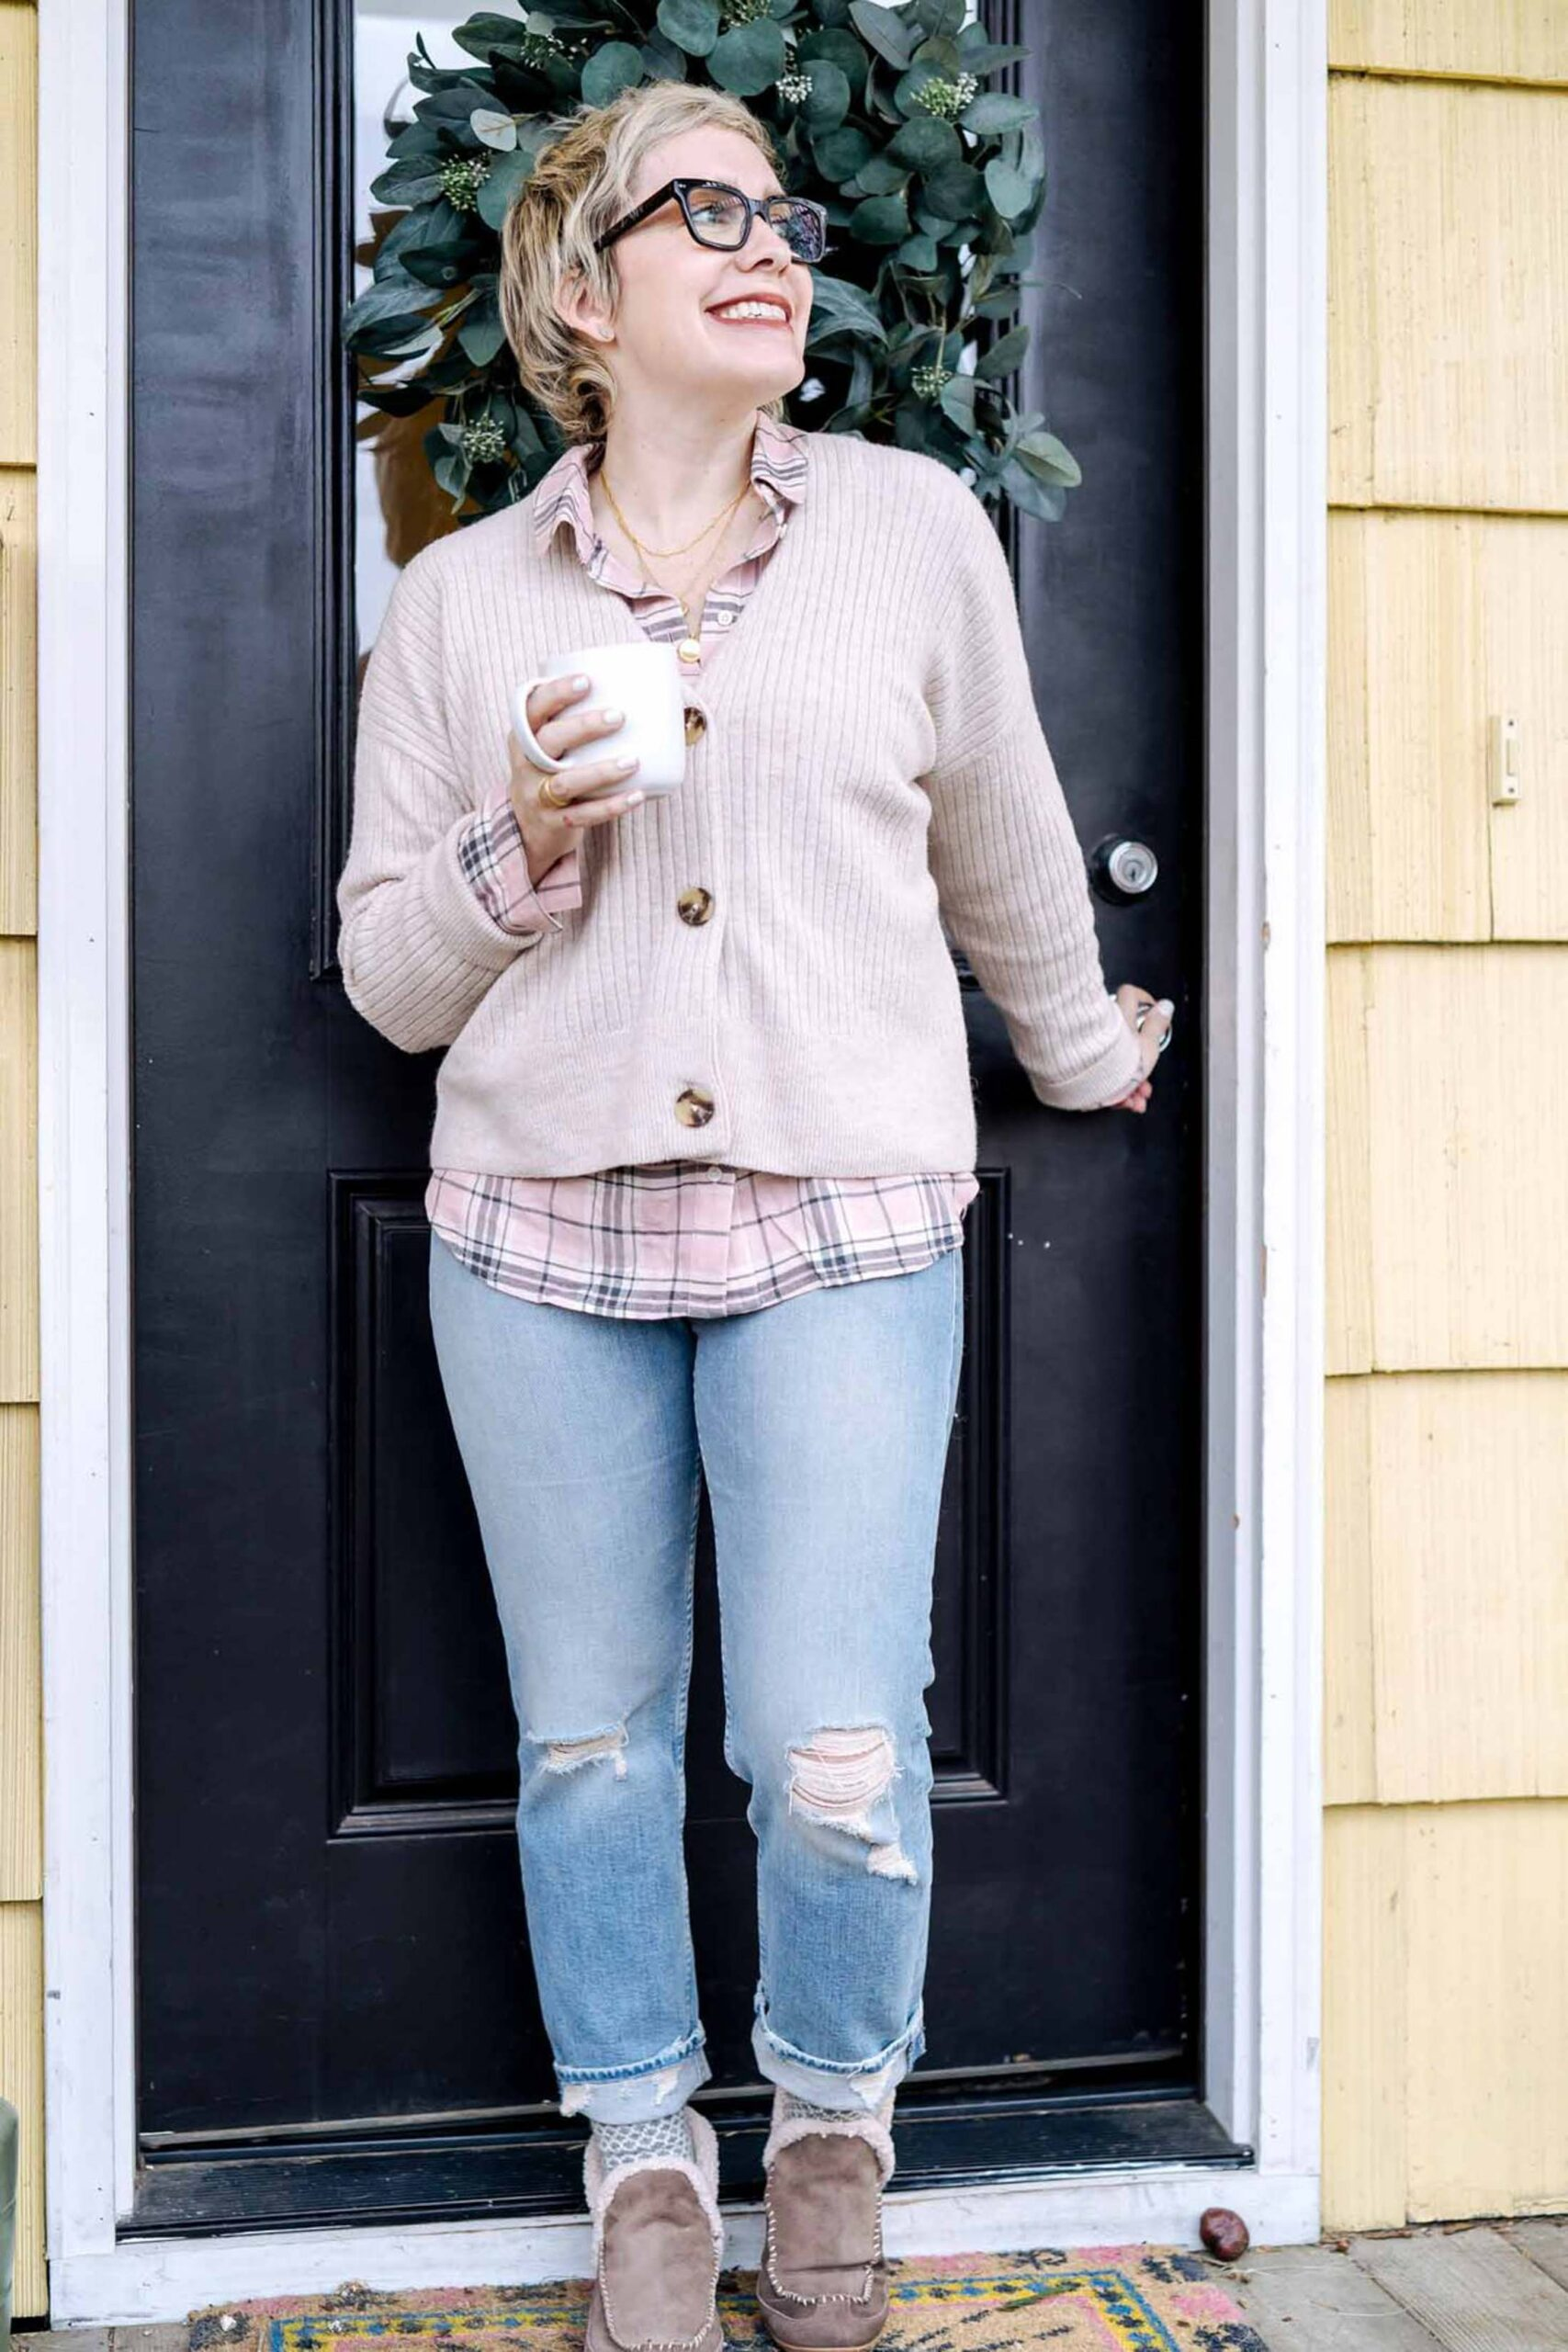 I kinda vibe w/ the whole mom jean/dad jean thing . And I weirdly LOVE a good snow boot. So why not combine them into an absolute LEWK?